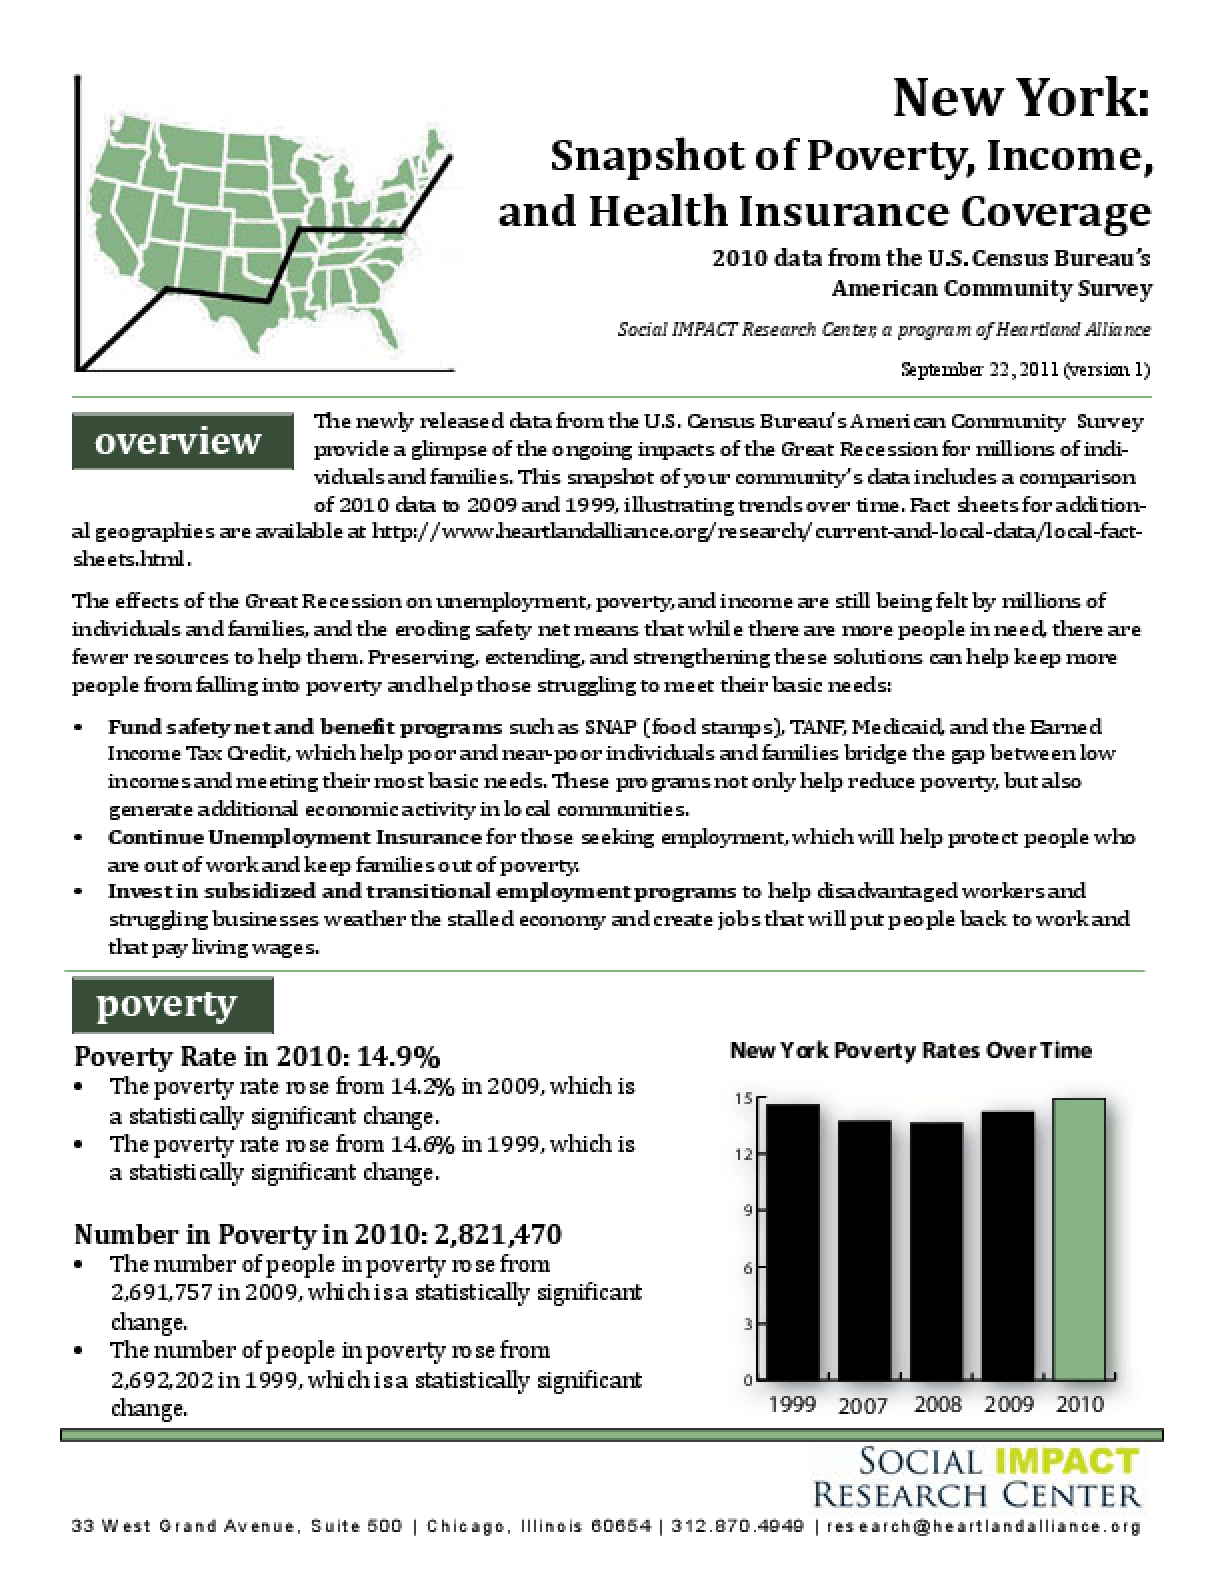 New York: Snapshot of Poverty, Income, and Health Insurance Coverage